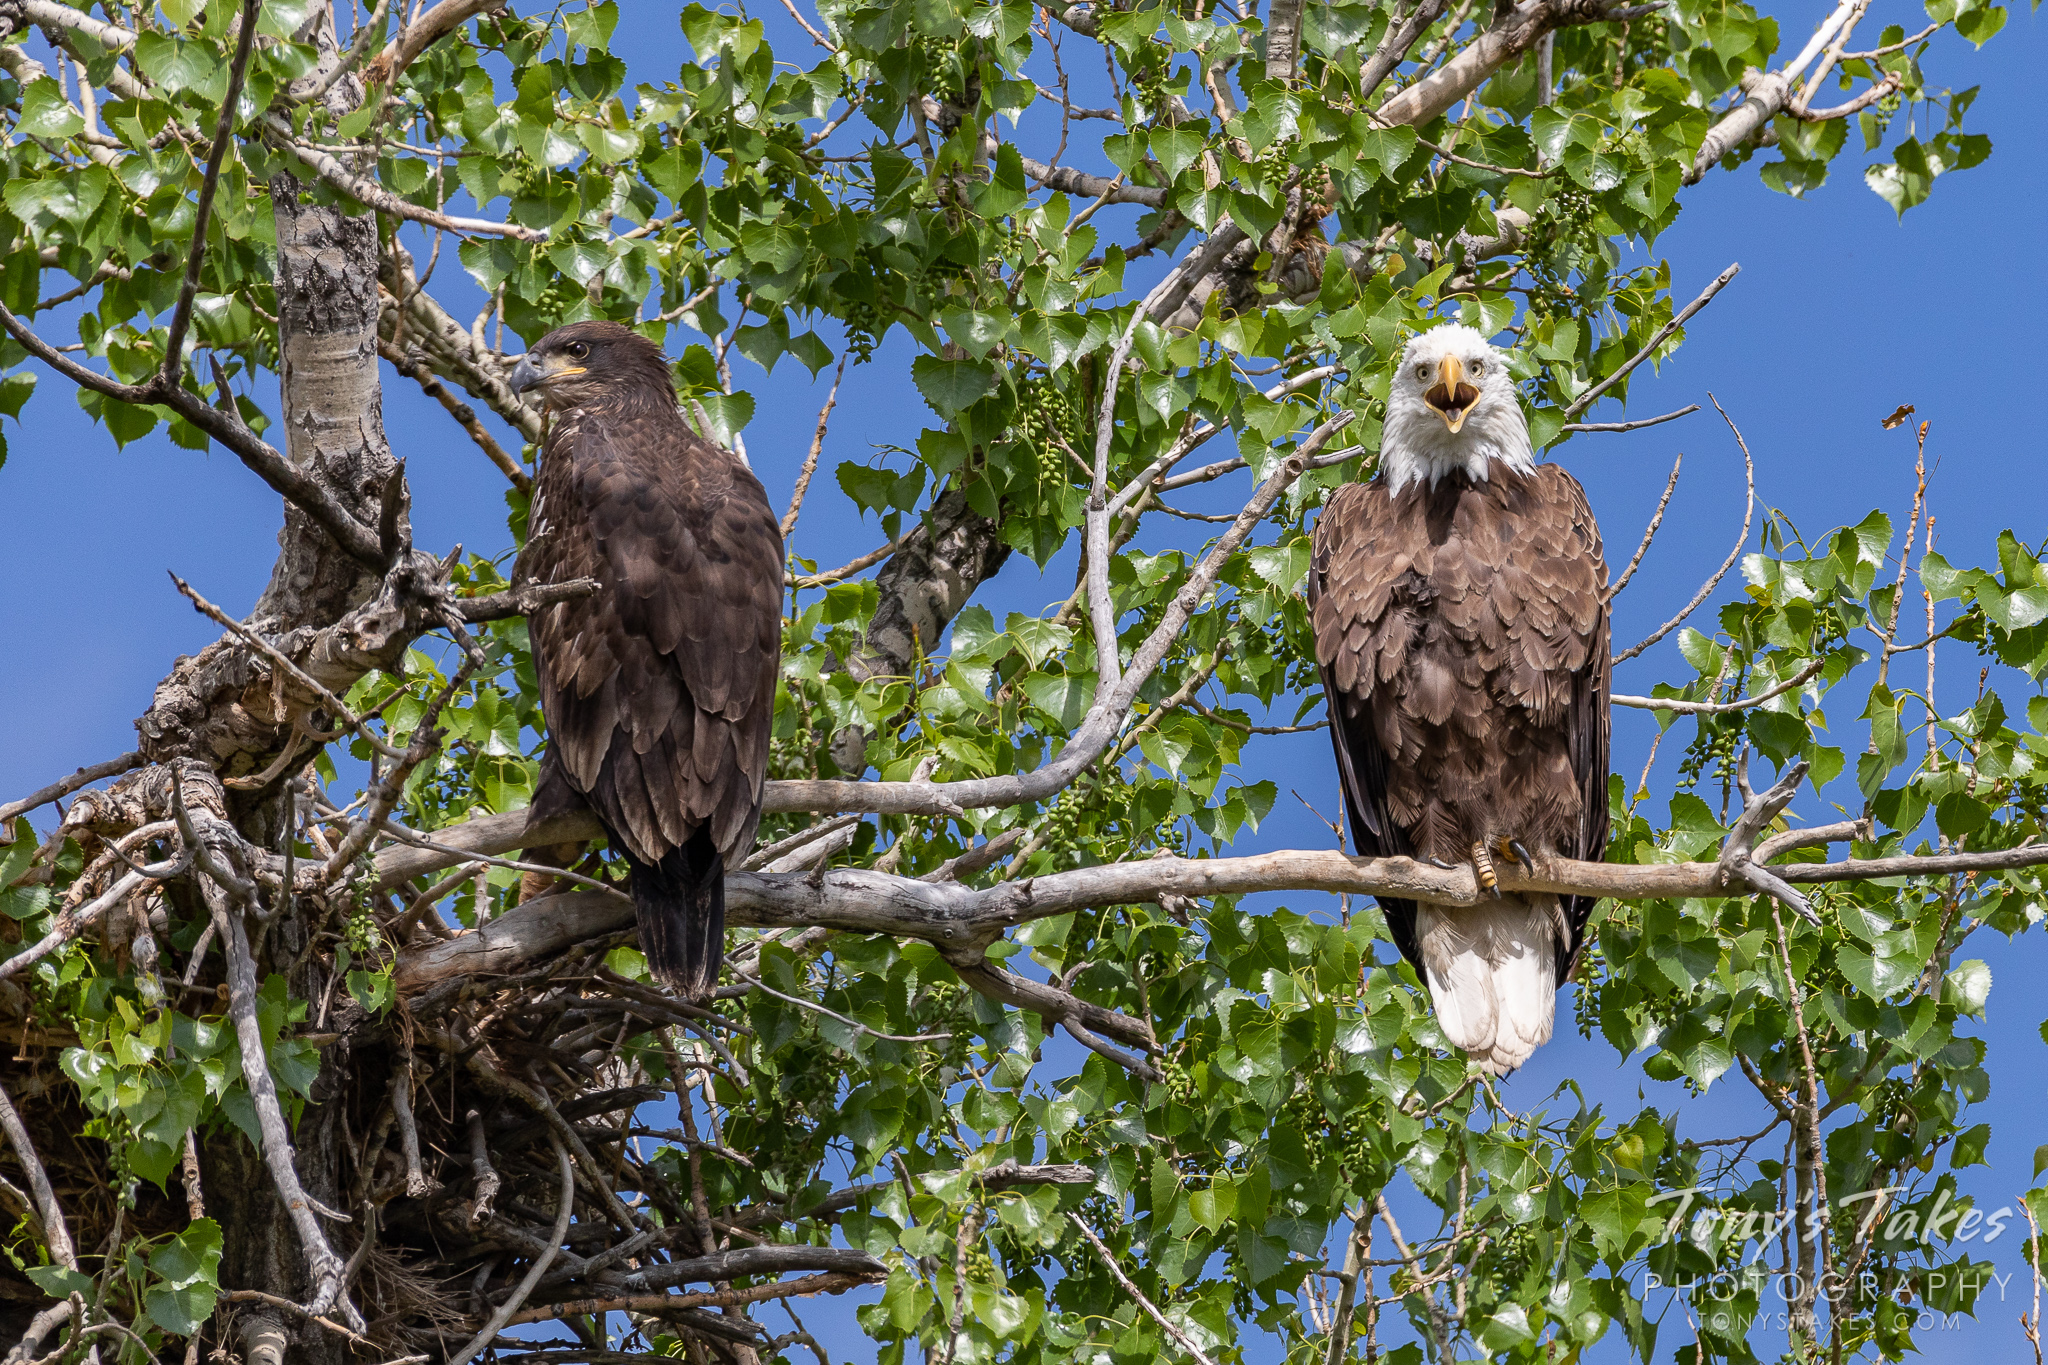 An adult bald eagle makes some noise while perched next to its juvenile offspring. (© Tony's Takes)